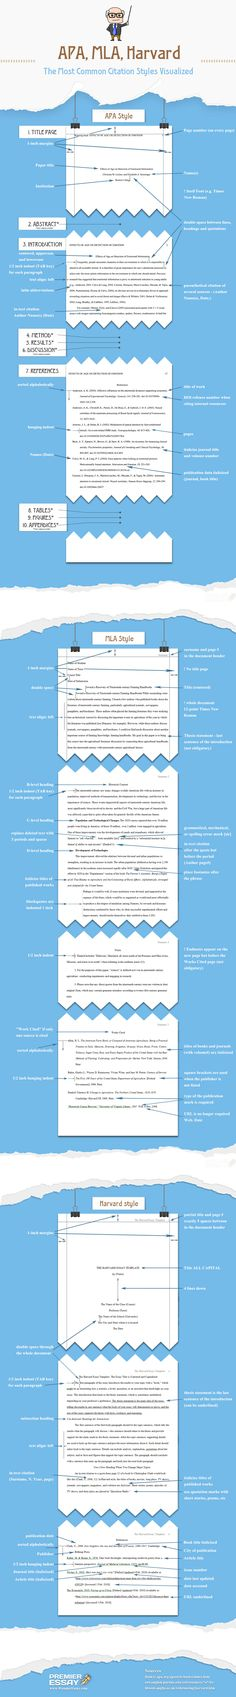 APA, MLA, Harvard - The Most Common Citation Styles Visualized #infographic ~ Visualistan